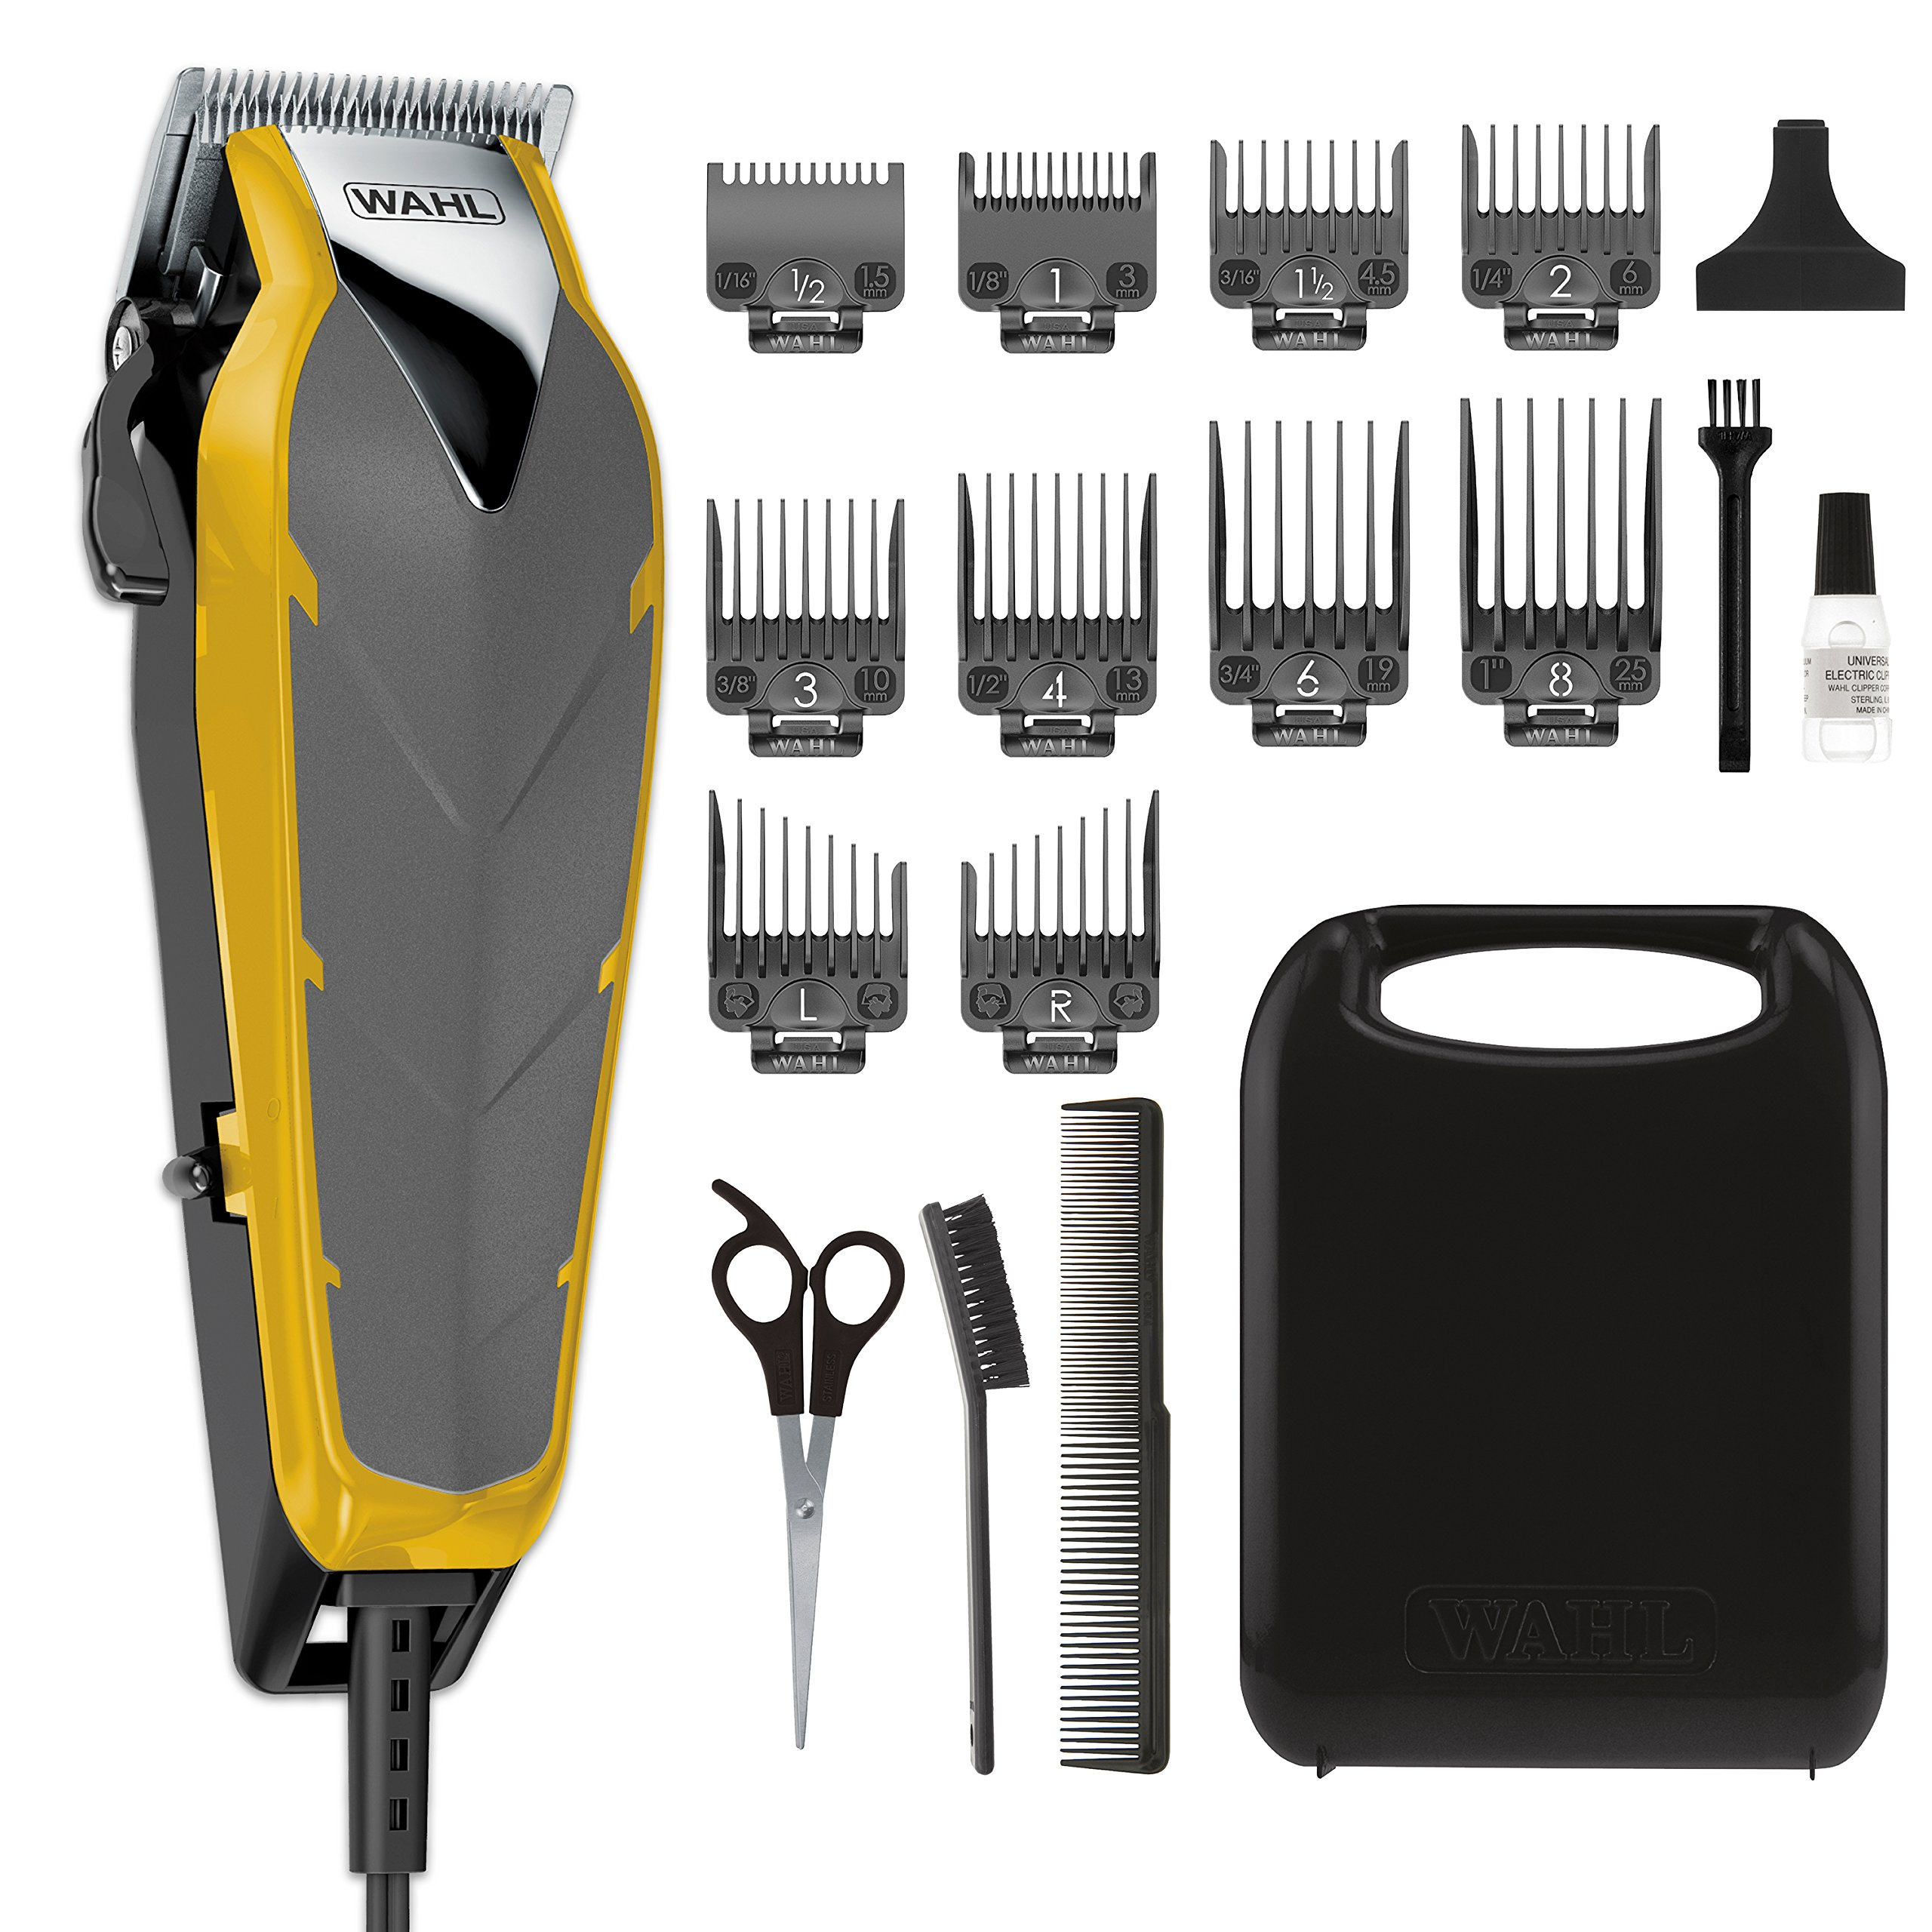 Wahl Clipper Fade Cut Haircutting Kit for Blending and Fade Cuts with Extreme-Fade Precision Blades, Heavy Duty Motor, Secure-Snap Attachment Guards, and Fade Lever for Home Haircuts - Model 79445